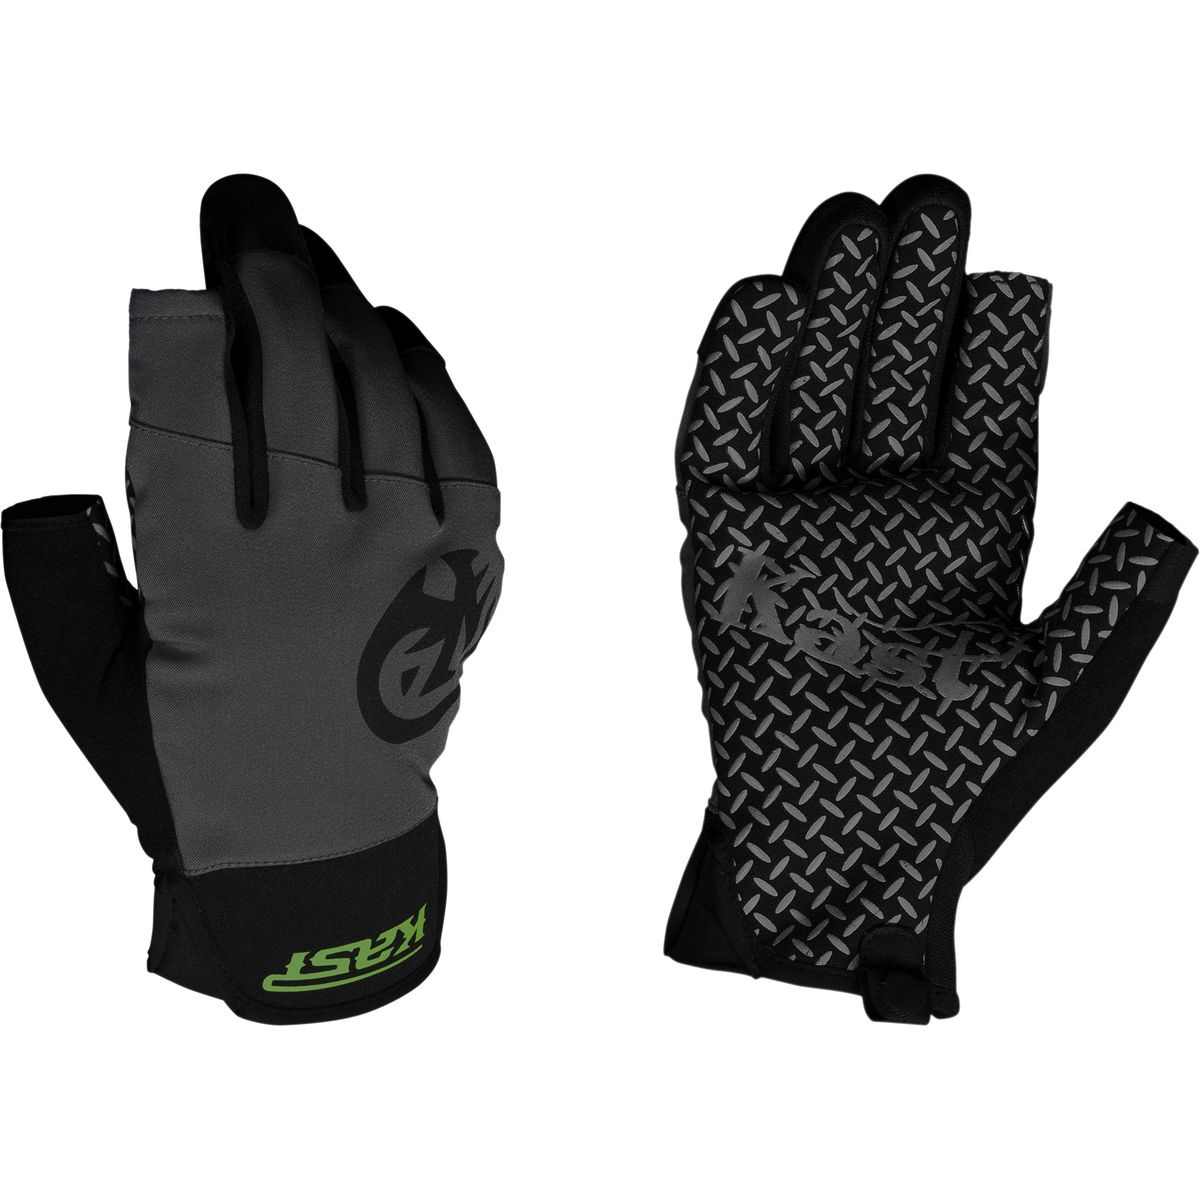 Kast Gear Raptor Trigger Glove Slate Grey Black L